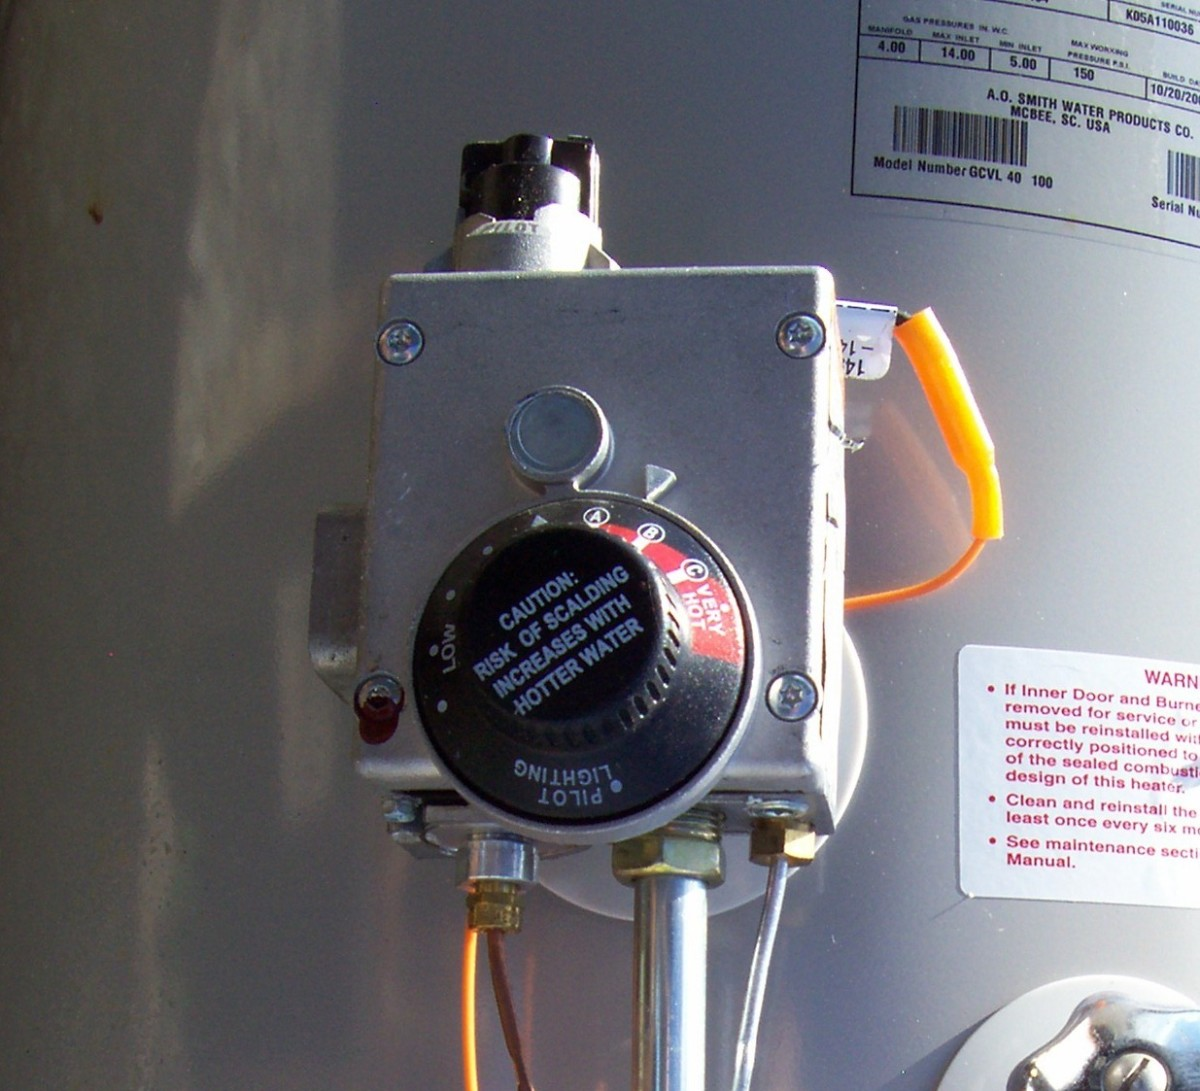 "On a more modern water heater, the controls may look a bit different like these but the concept of turning it to ""pilot"" is the same. The biggest difference here is that there is no separate pilot button. The button is the control knob."